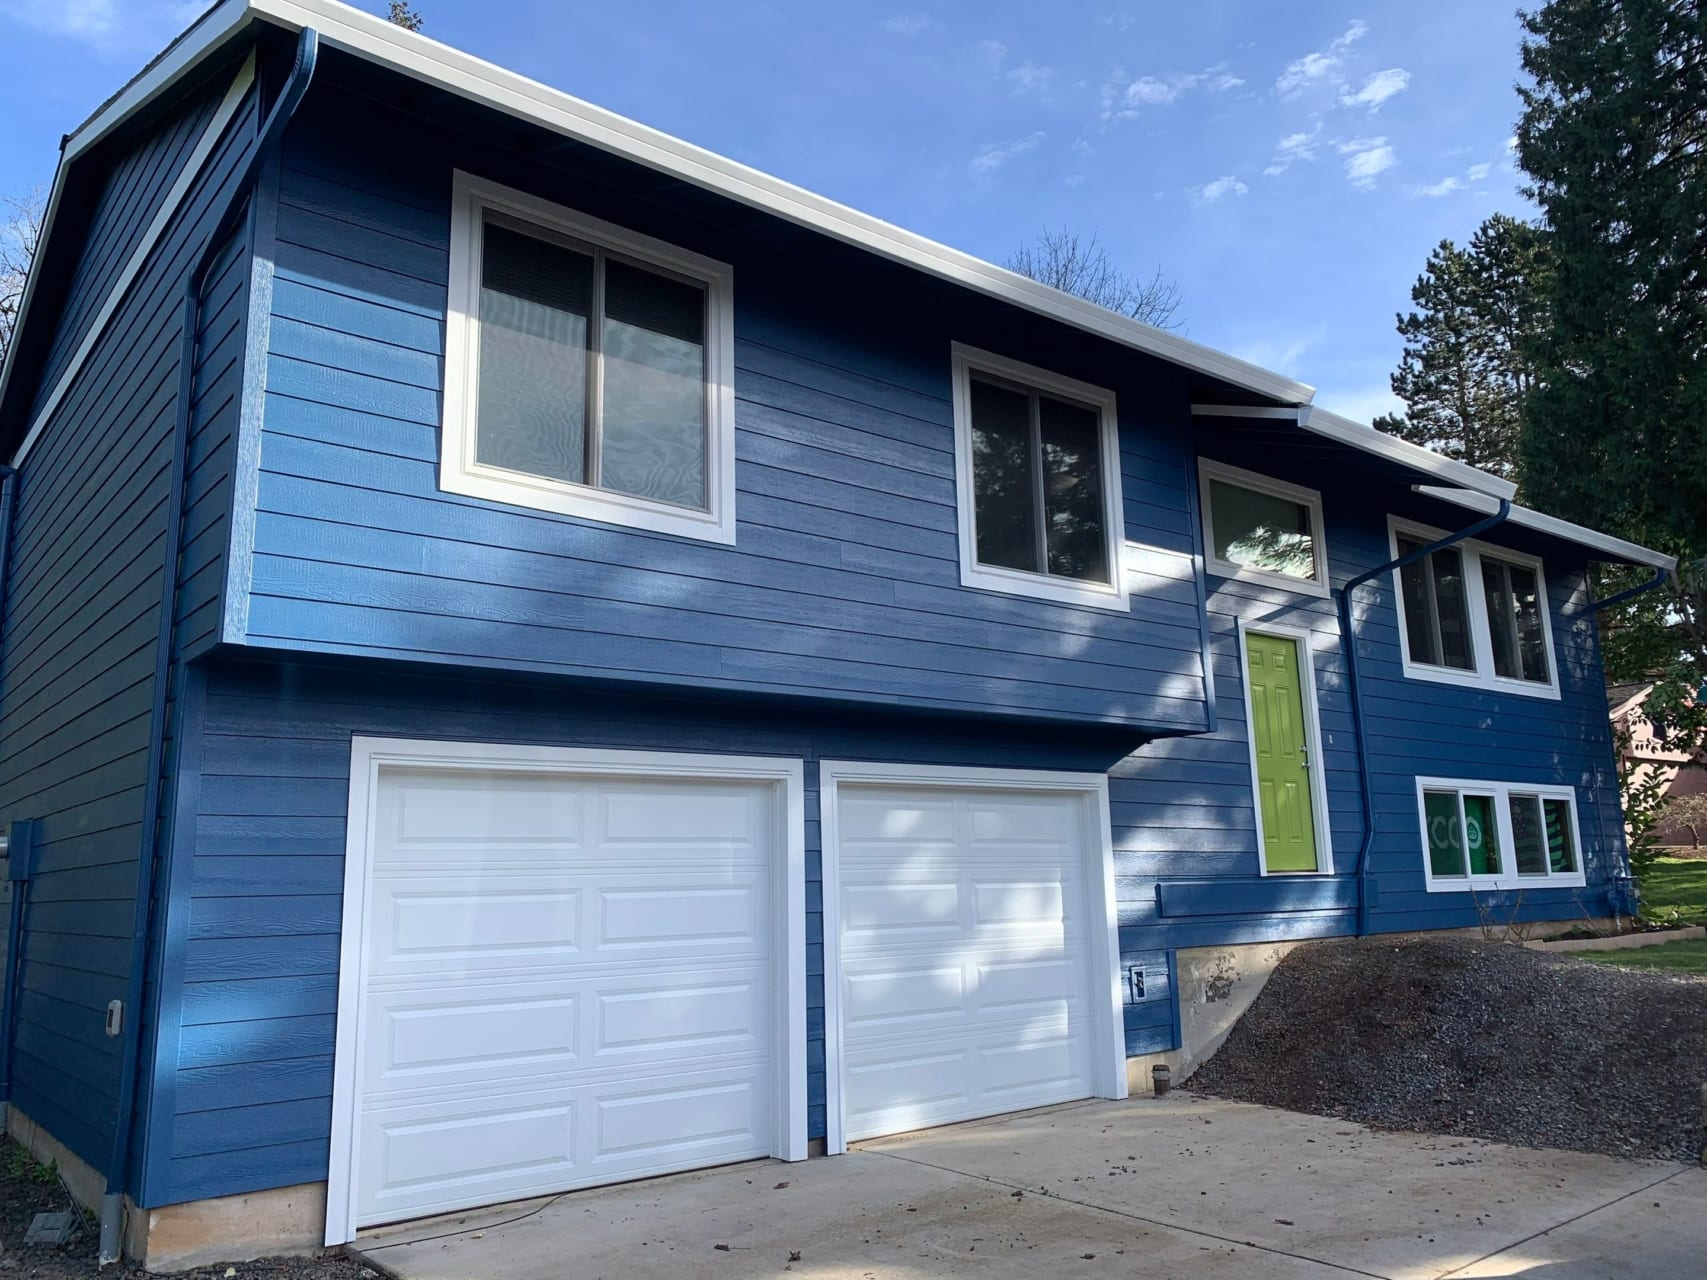 Brand new James Hardie Siding on home in Sandy Oregon